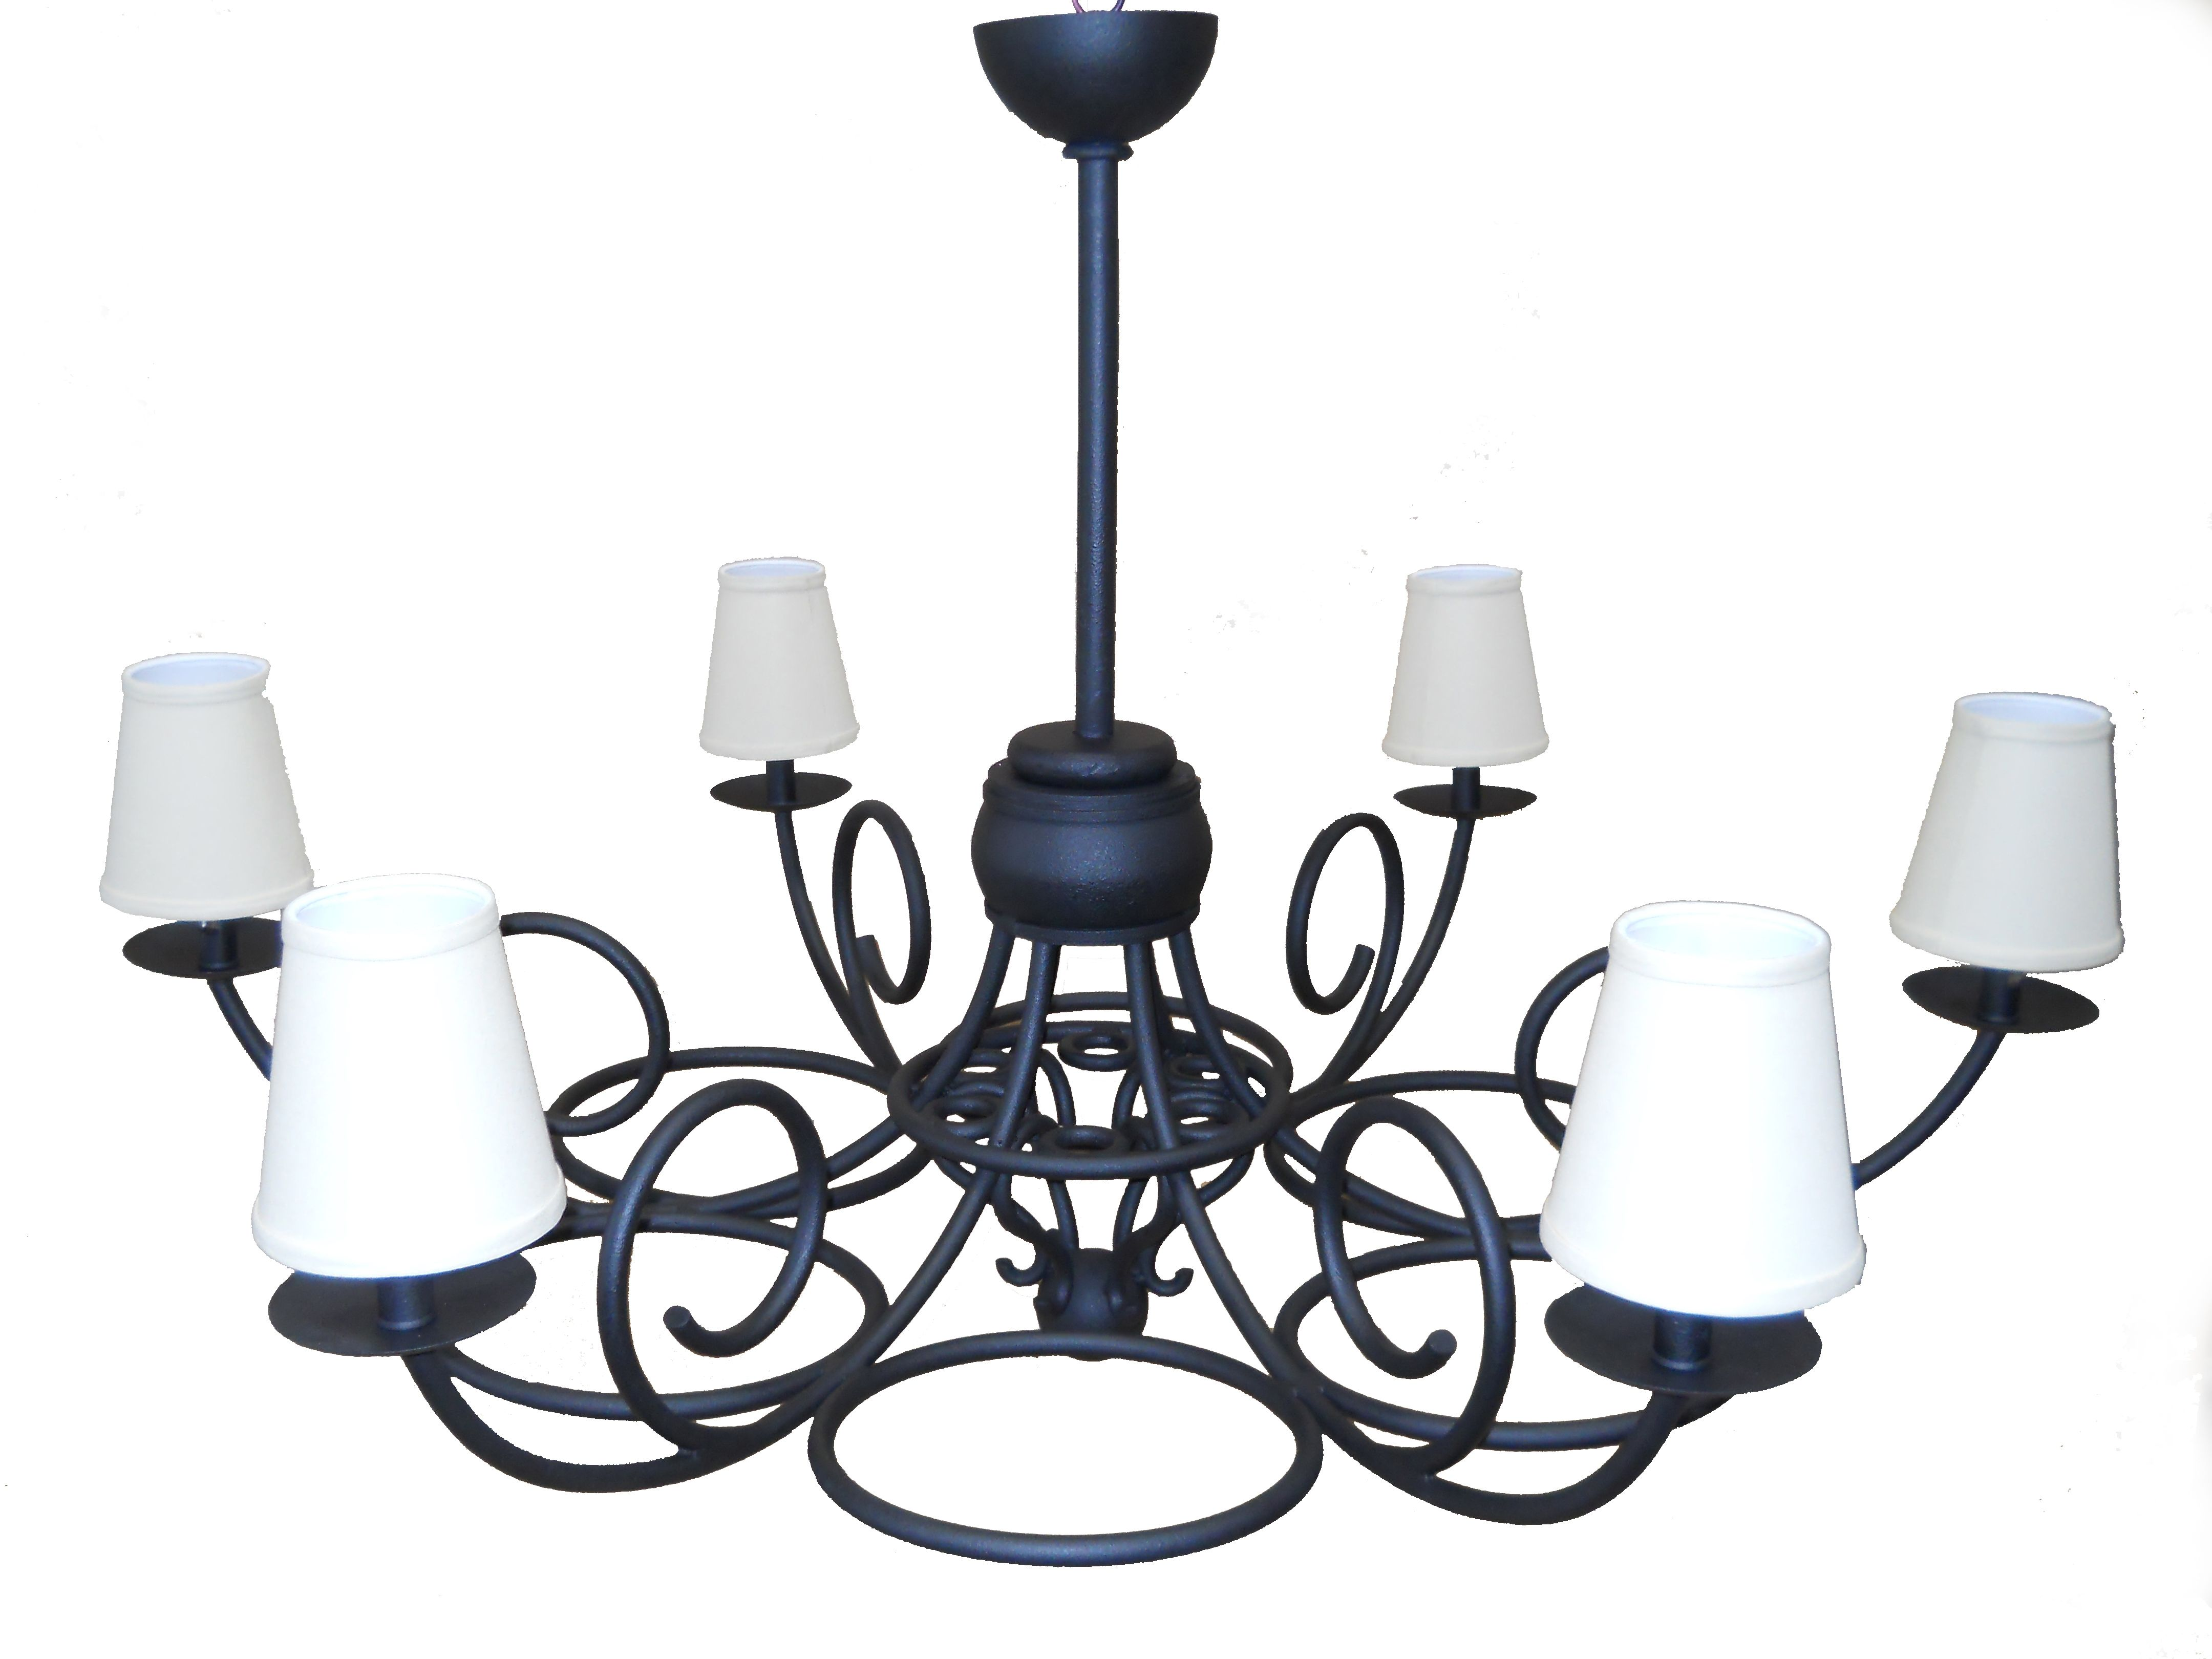 Hand forged black wrought iron traditional chandelier linen hand forged black wrought iron traditional chandelier linen shades classic iworks arubaitofo Image collections